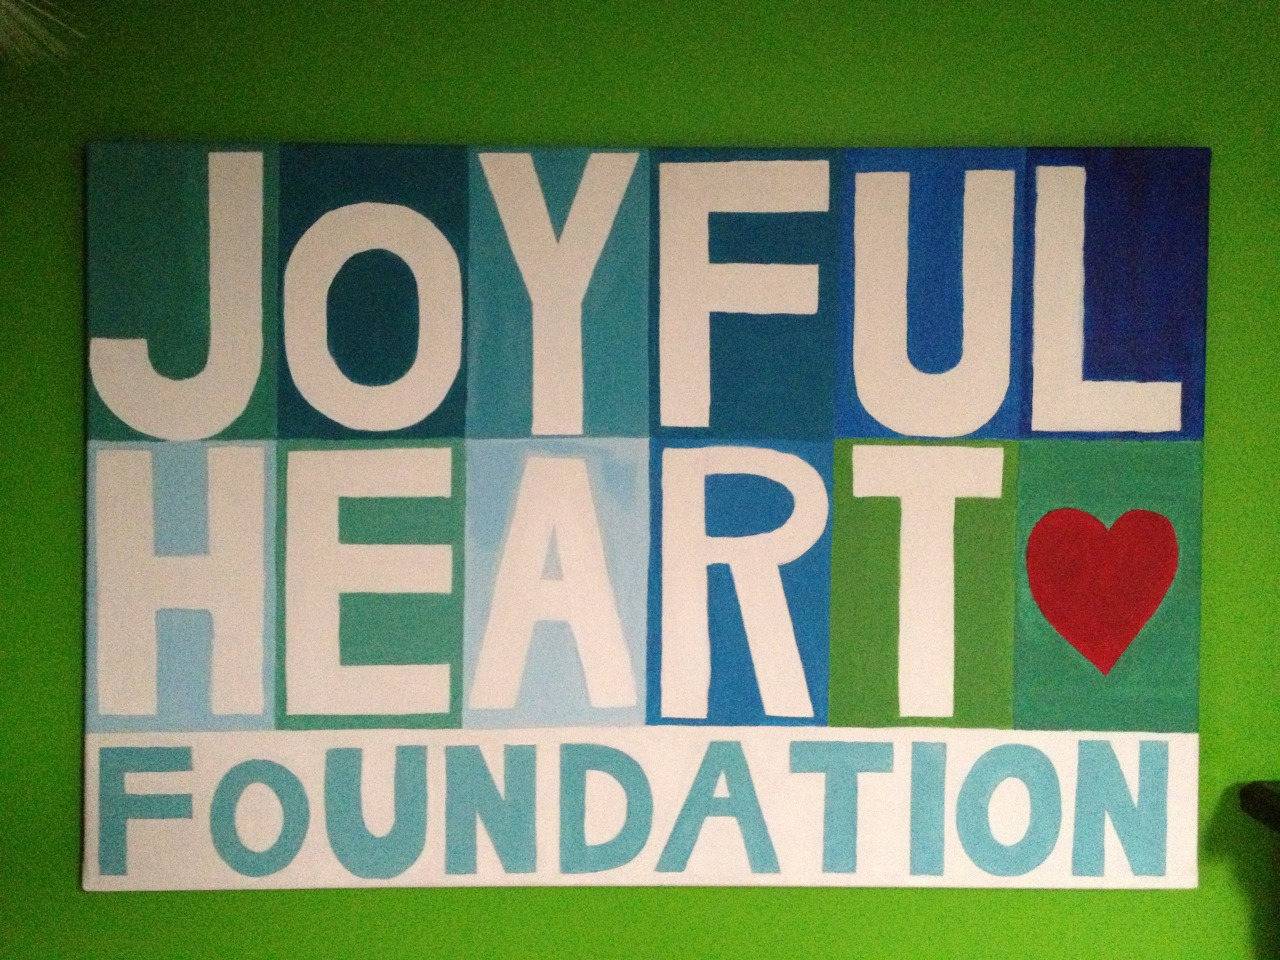 joyfulheartinspired:  Dear Joyful Friends, To support the Joyful Heart Foundation, I will be hand painting their logo on canvas's and selling them. 100% of the net profit will be going to the Joyful Heart Foundation. This is a perfect way for you to be able to support Joyful Heart and also be able to raise awareness by sporting their logo in your home or office etc! I am offering a variety of different sizes and prices, you can check out my Esty shop and purchase your own Joyful Heart painting NOW!http://www.etsy.com/shop/JoyfulHeartInspired The mission of the Joyful Heart Foundation is to heal, educate, and empower survivors of sexual assault, domestic violence, and child abuse and to shed light into the darkness that surrounds these issues.